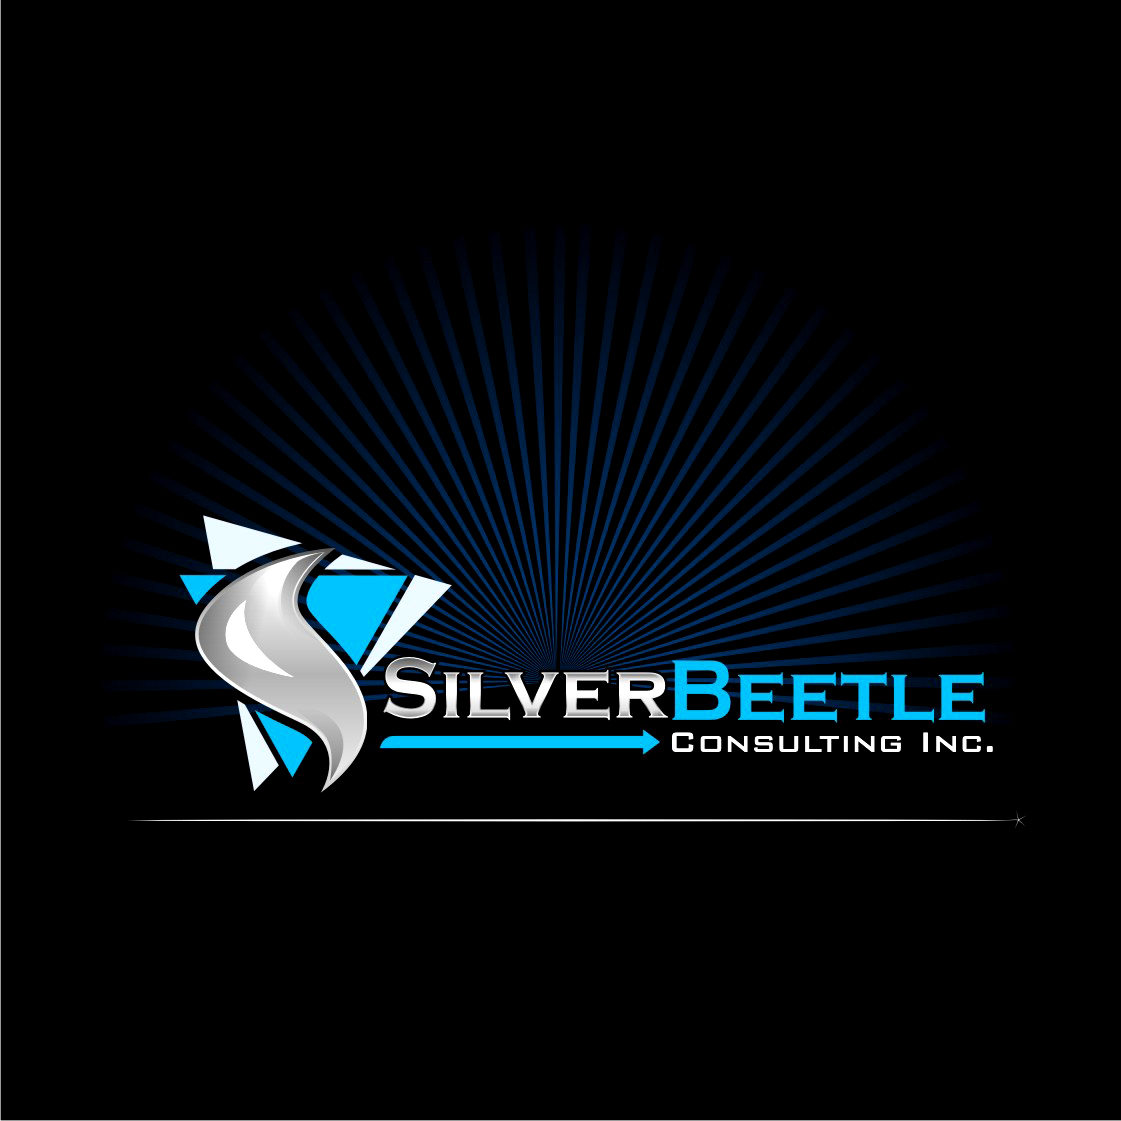 Logo Design by Private User - Entry No. 122 in the Logo Design Contest Silver Beetle Consulting Inc. Logo Design.